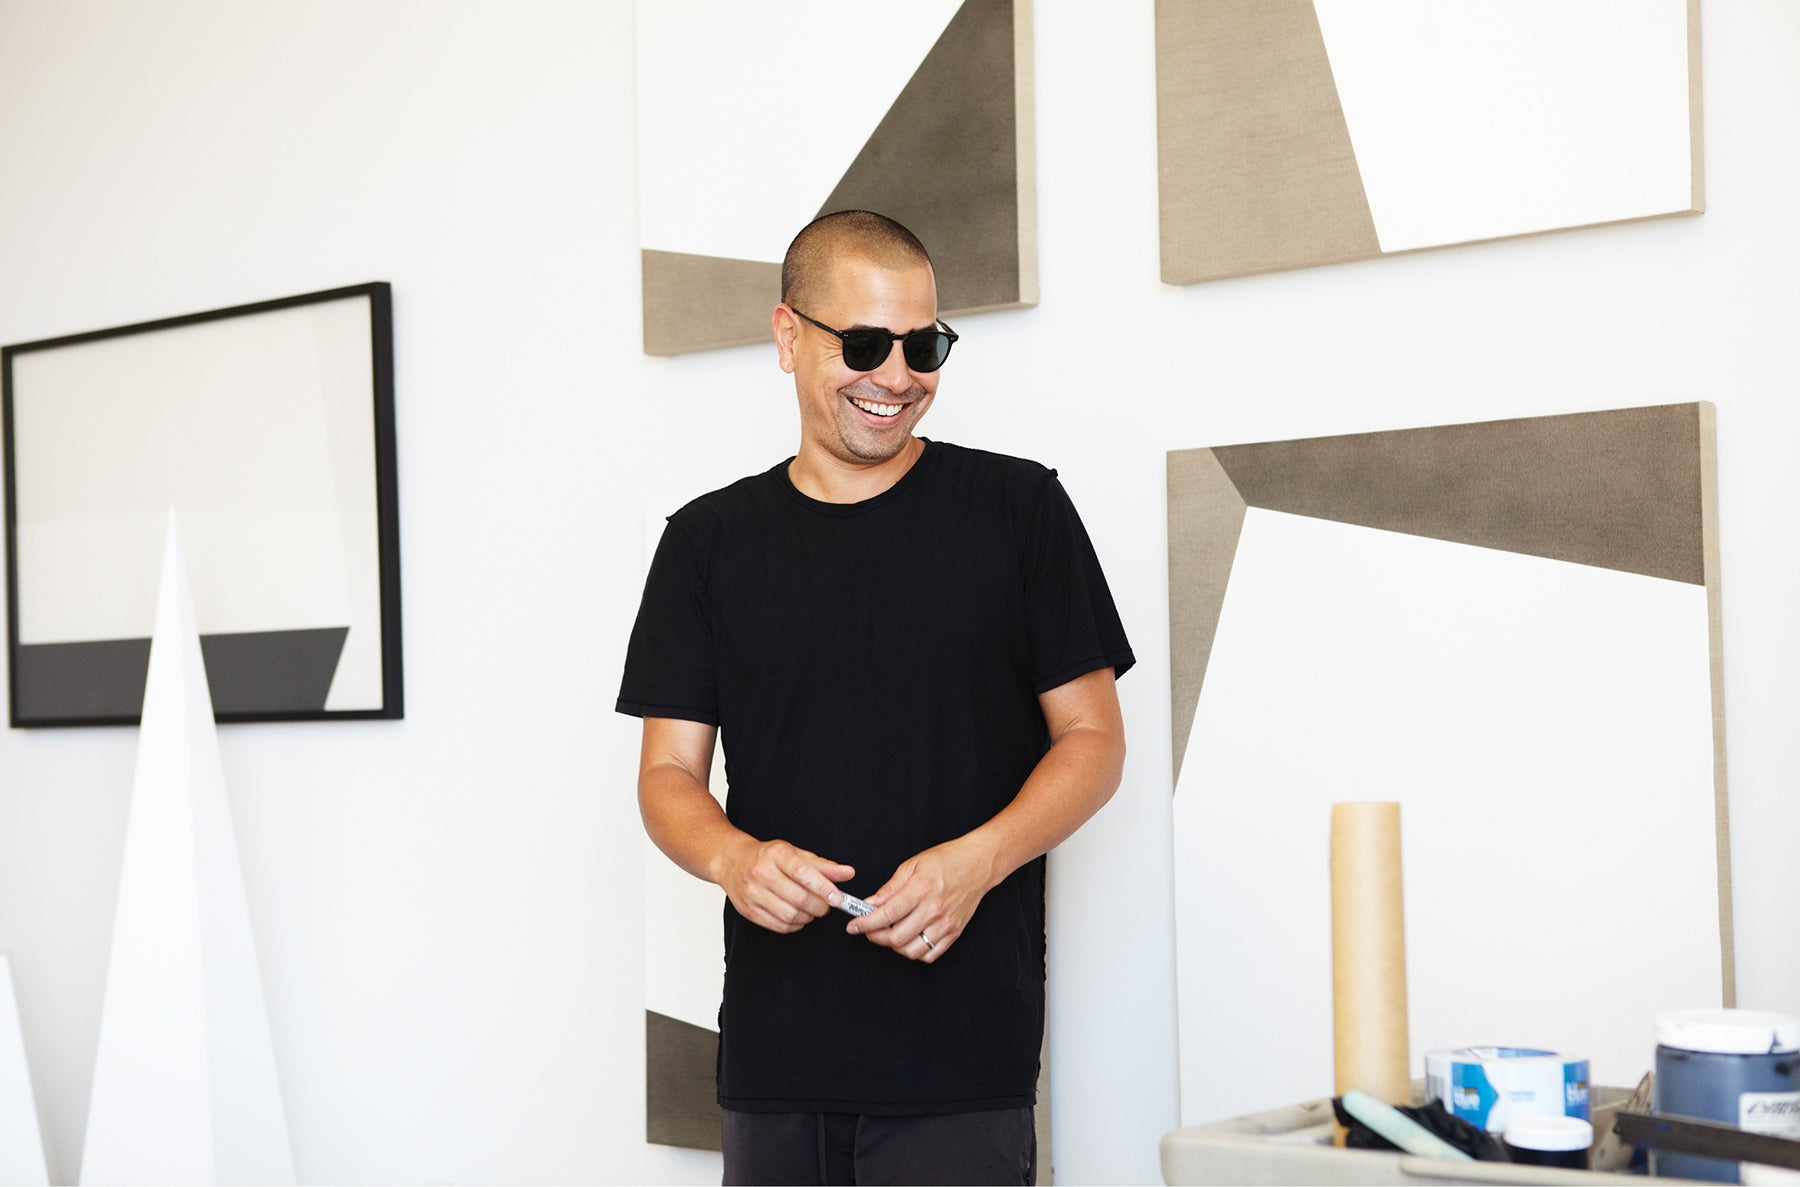 Tofer Chin studio, in Garrett Leight Brooks Sunglass